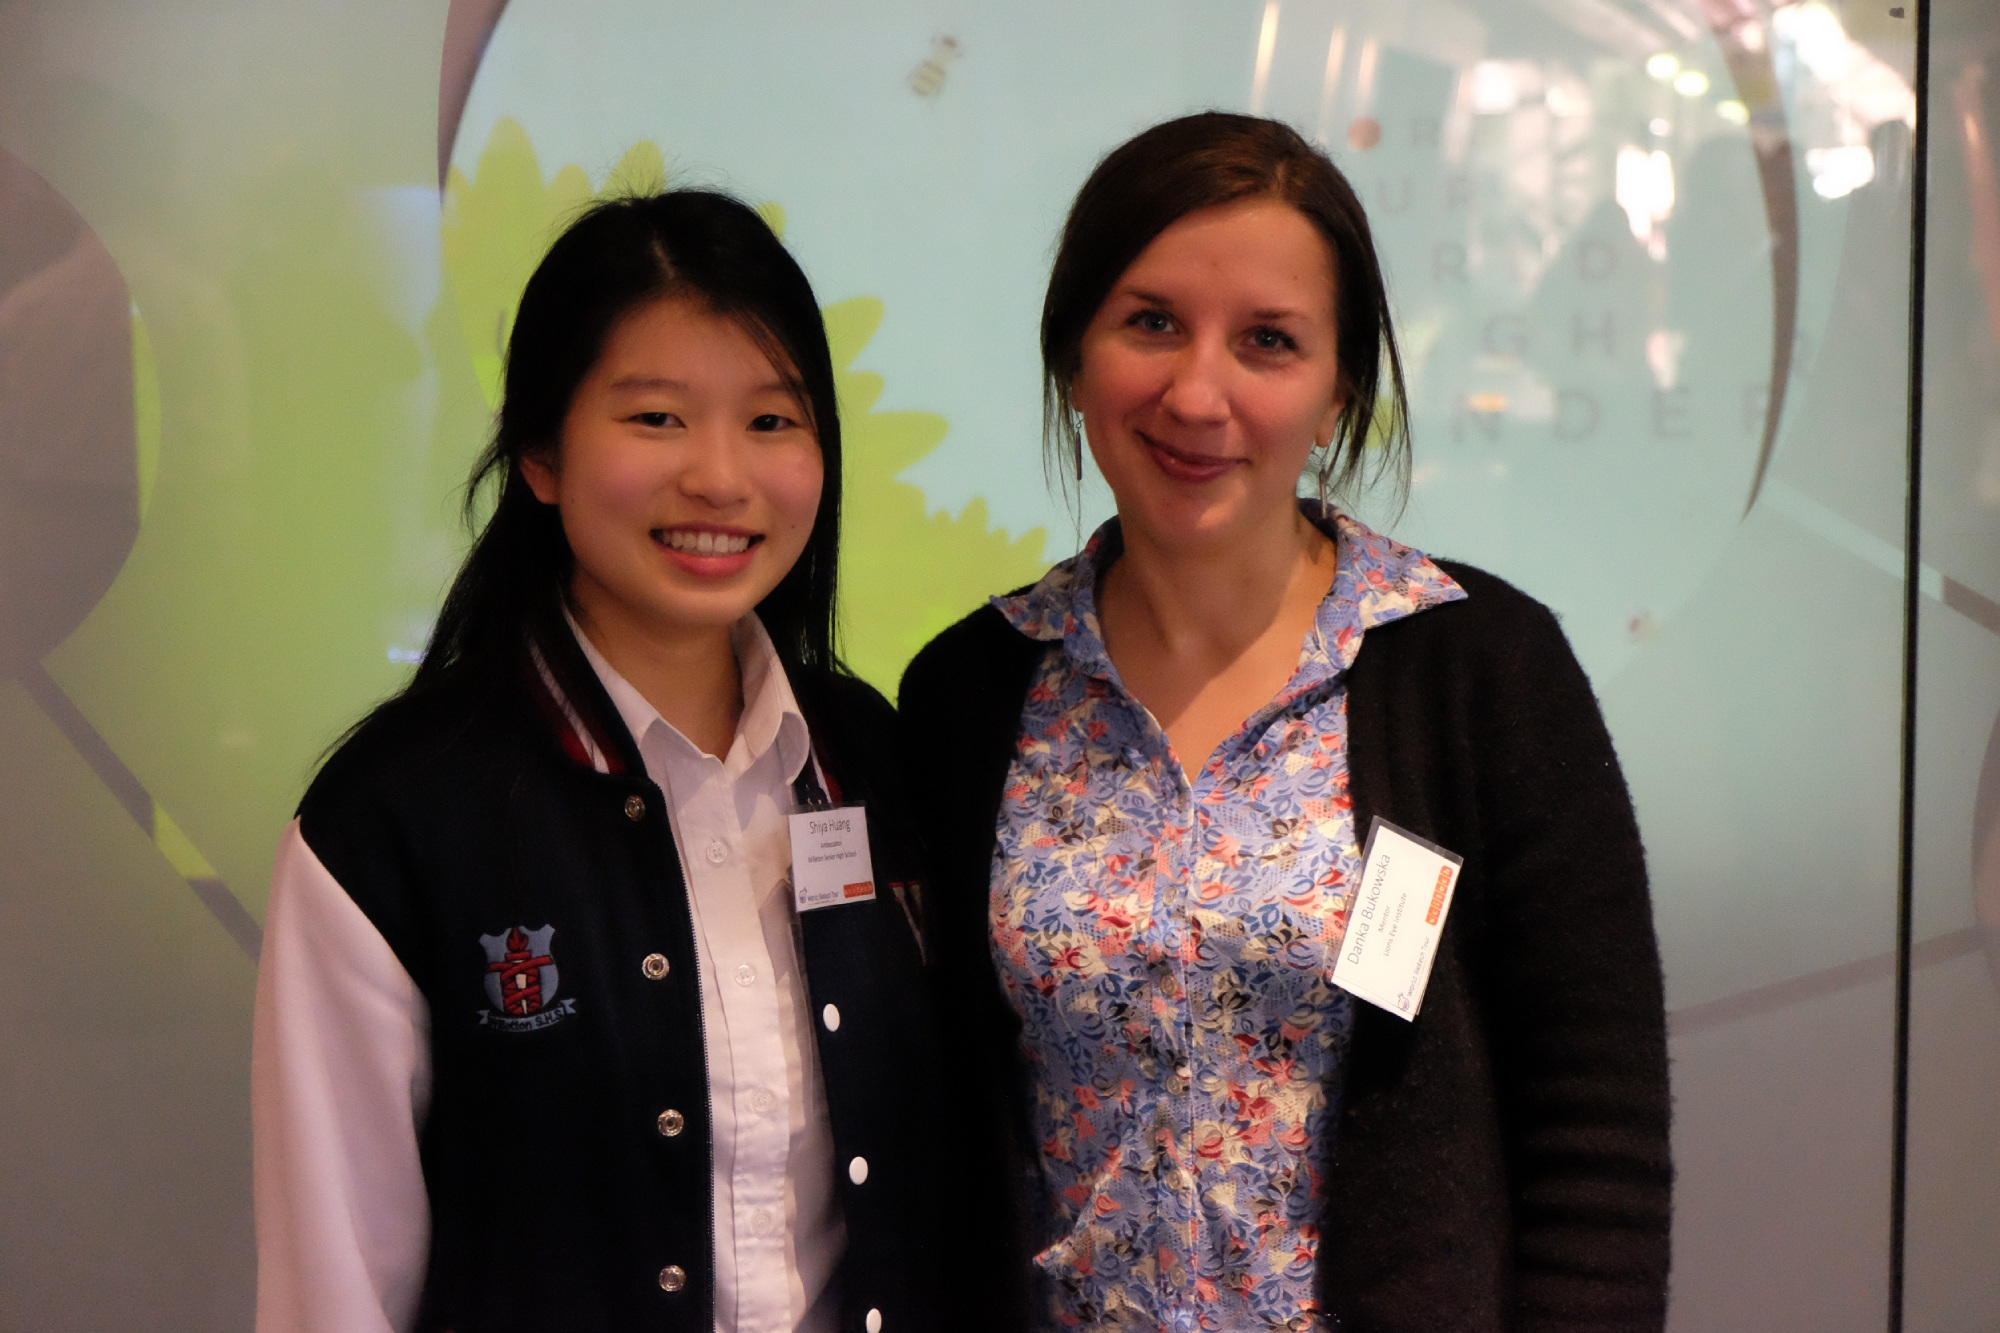 Shiya Huang (15) with mentor and research associate at the Lions Eye Institute Danuta Bukowska.